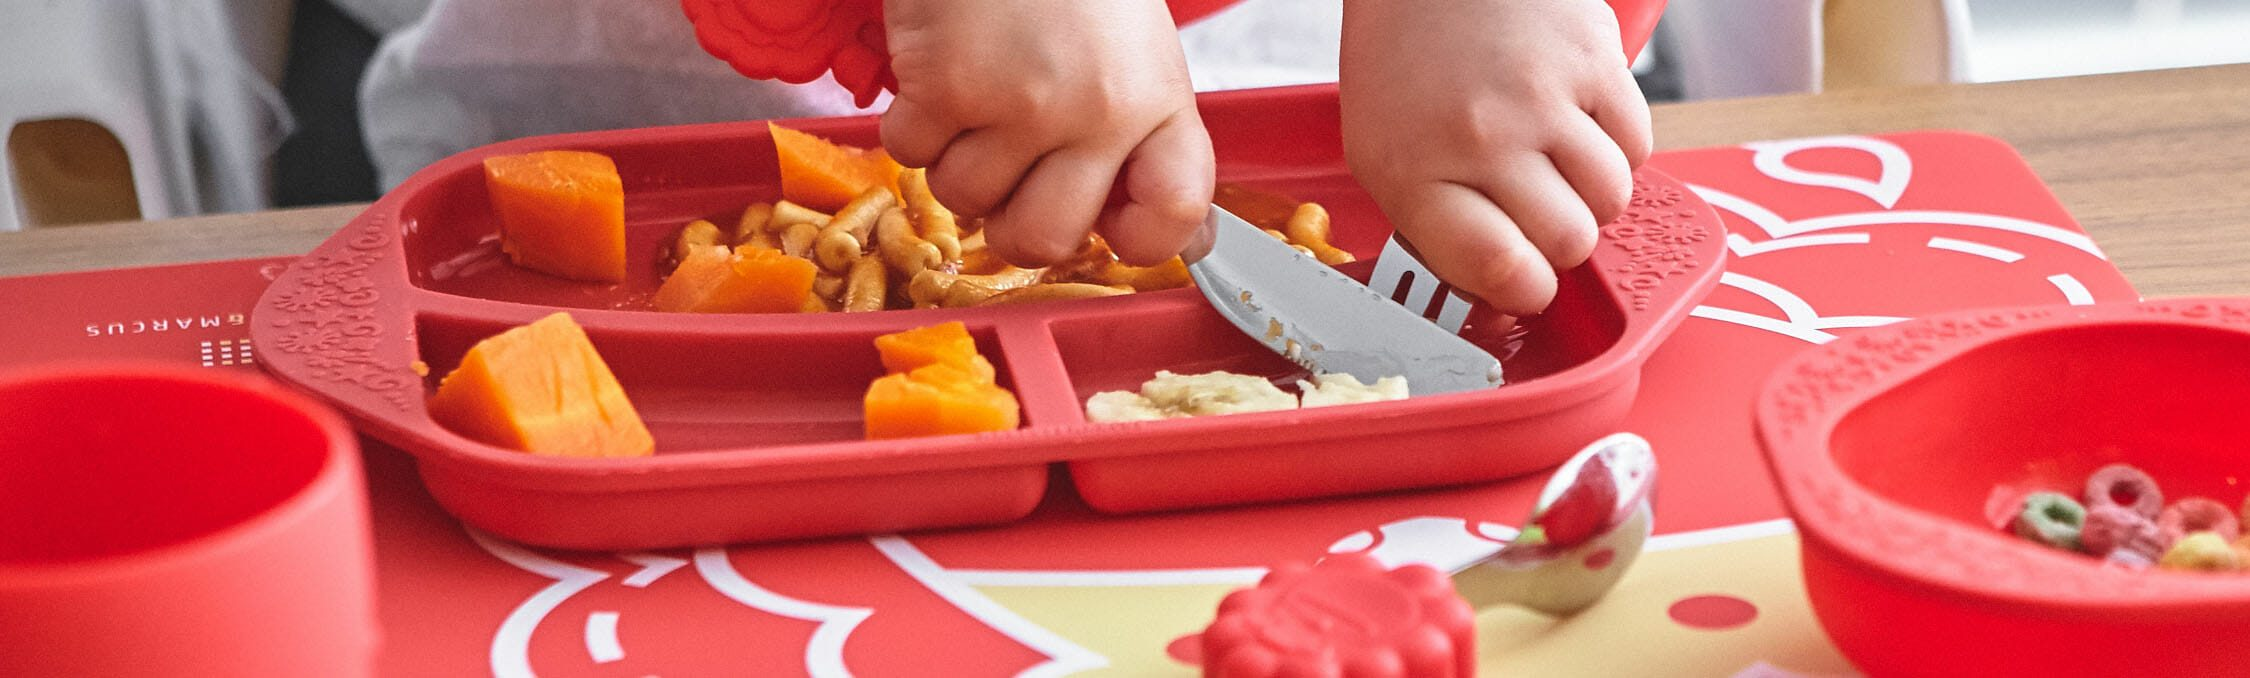 Marcus Marcus MARCUS RED LION Cutlery / Utensil Set bpa/phthalate free and very handy.